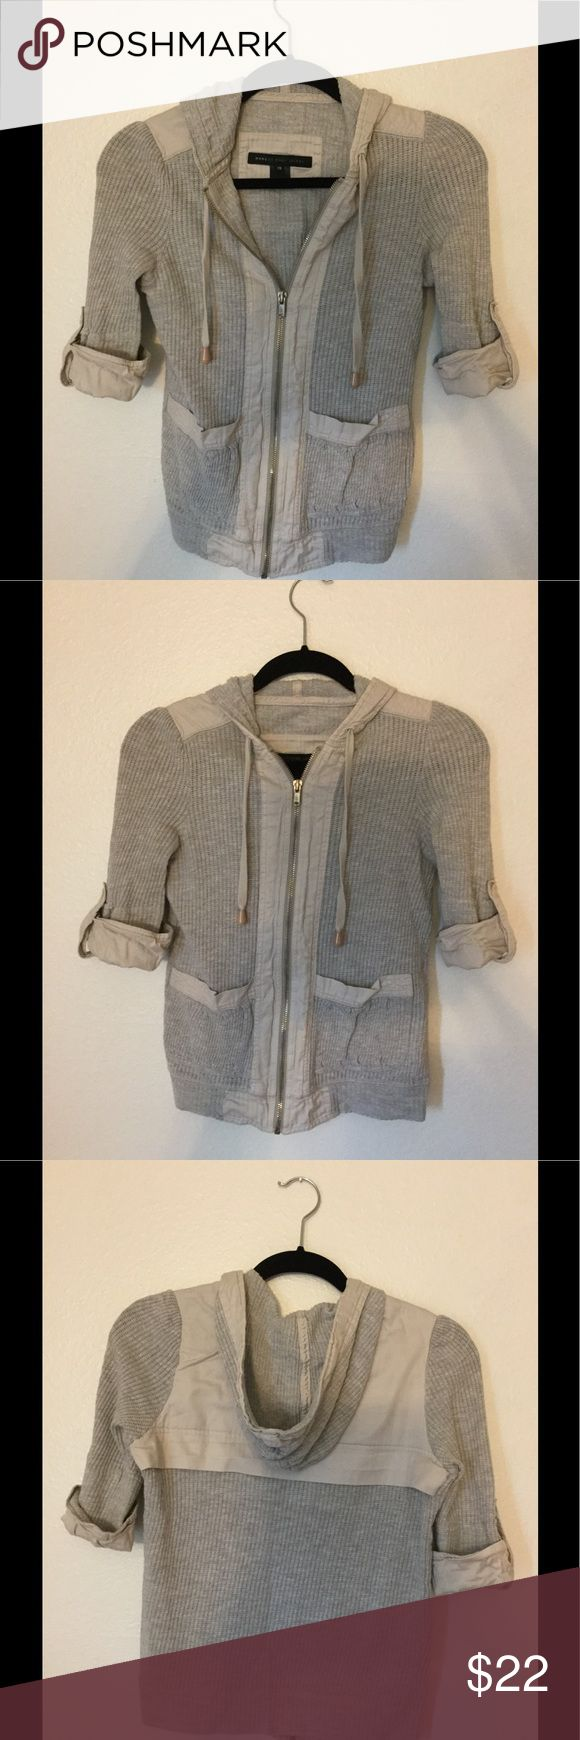 Marc by Marc Jacobs- Zip up hoodie jacket shirt Gray & khaki beige, Zip up hoodie jacket shirt. Looks great over tank tops! Size XS  * Item is from a smoke free and pet free home. Marc By Marc Jacobs Tops